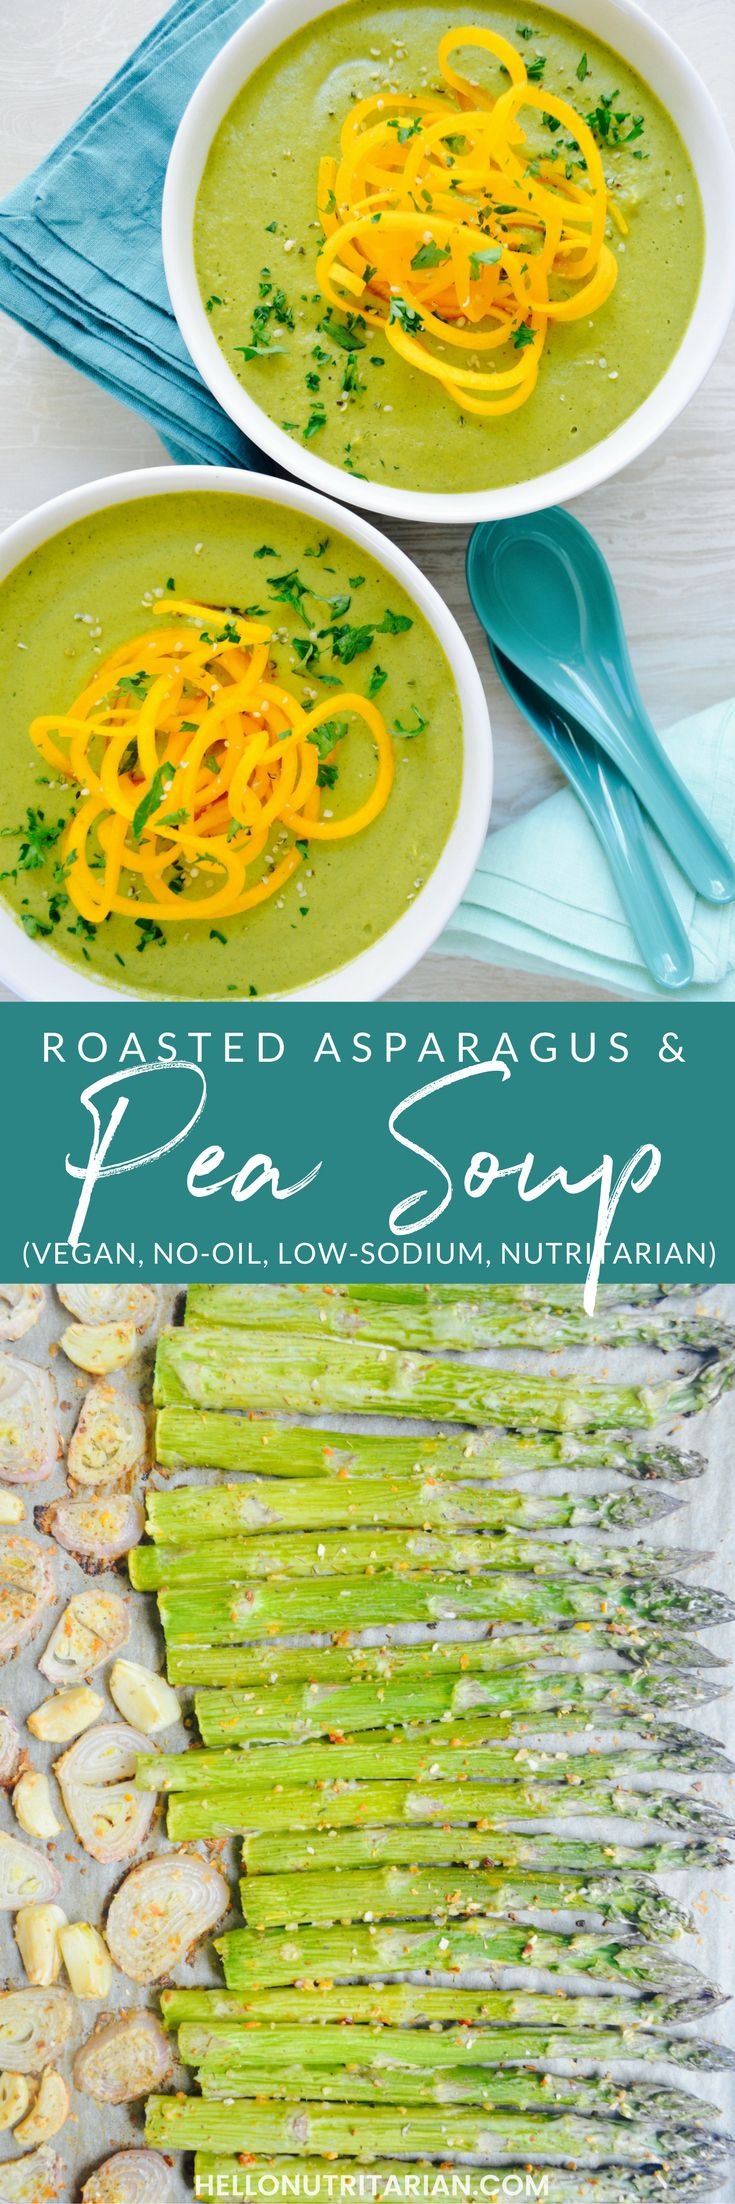 "Roasted Asparagus & Pea Soup Recipe | vegan, oil free, low sodium, whole food plant based, and nutritarian!  What I love most about this soup recipe is that you do all of the cooking on a sheet pan, letting the veggies roast and caramelize and develop amazing flavor!  Shallots, garlic, asparagus, peas, veggie stock and almond milk all combine into a bright, creamy soup that's perfect for fall!  Click through for the full printable recipe and how to make a spaghetti squash ""bread bowl"" too!"